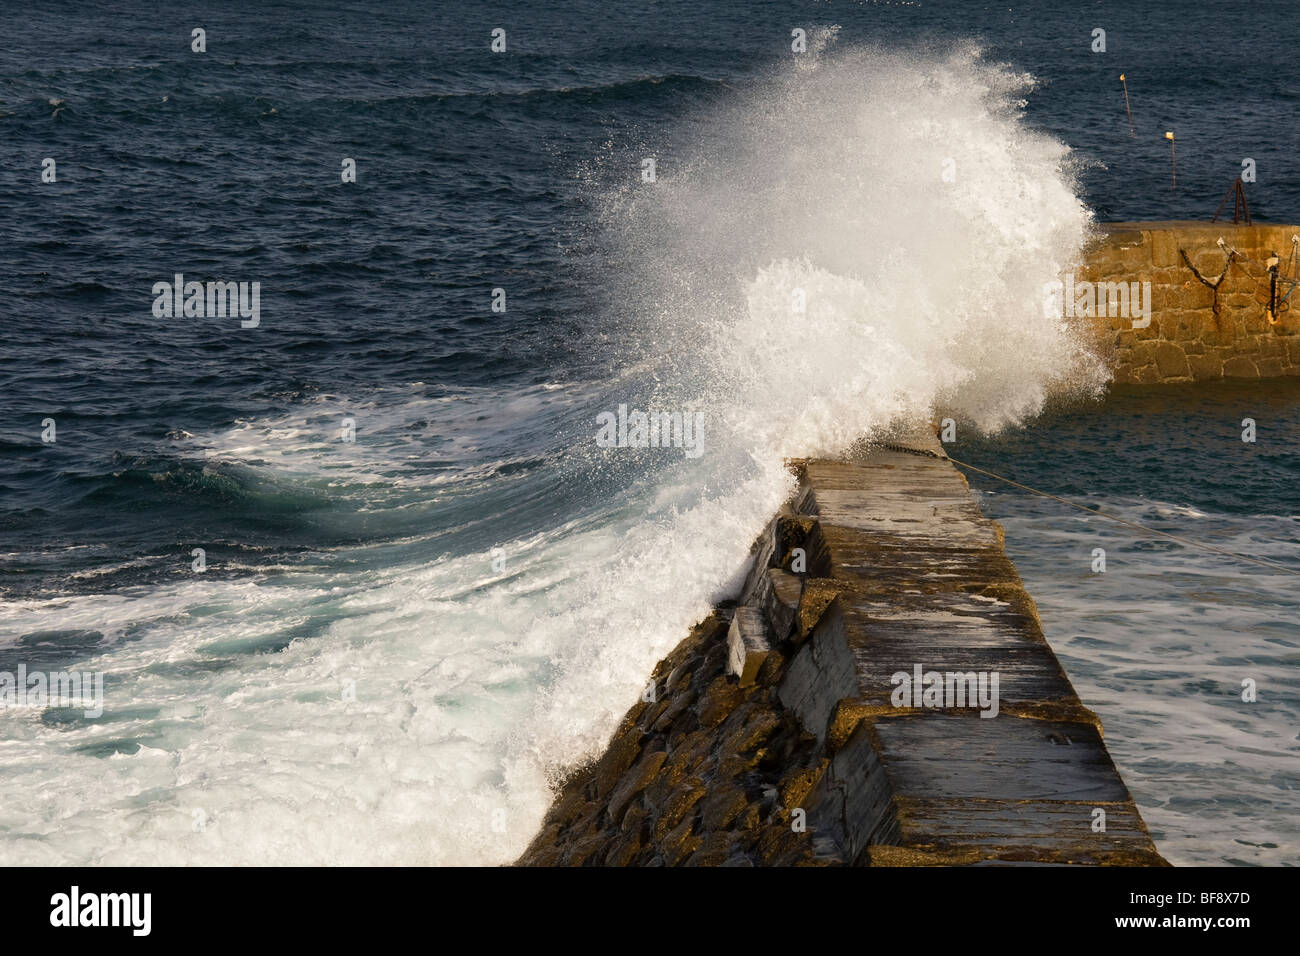 Crashing Waves 2 - Stock Image